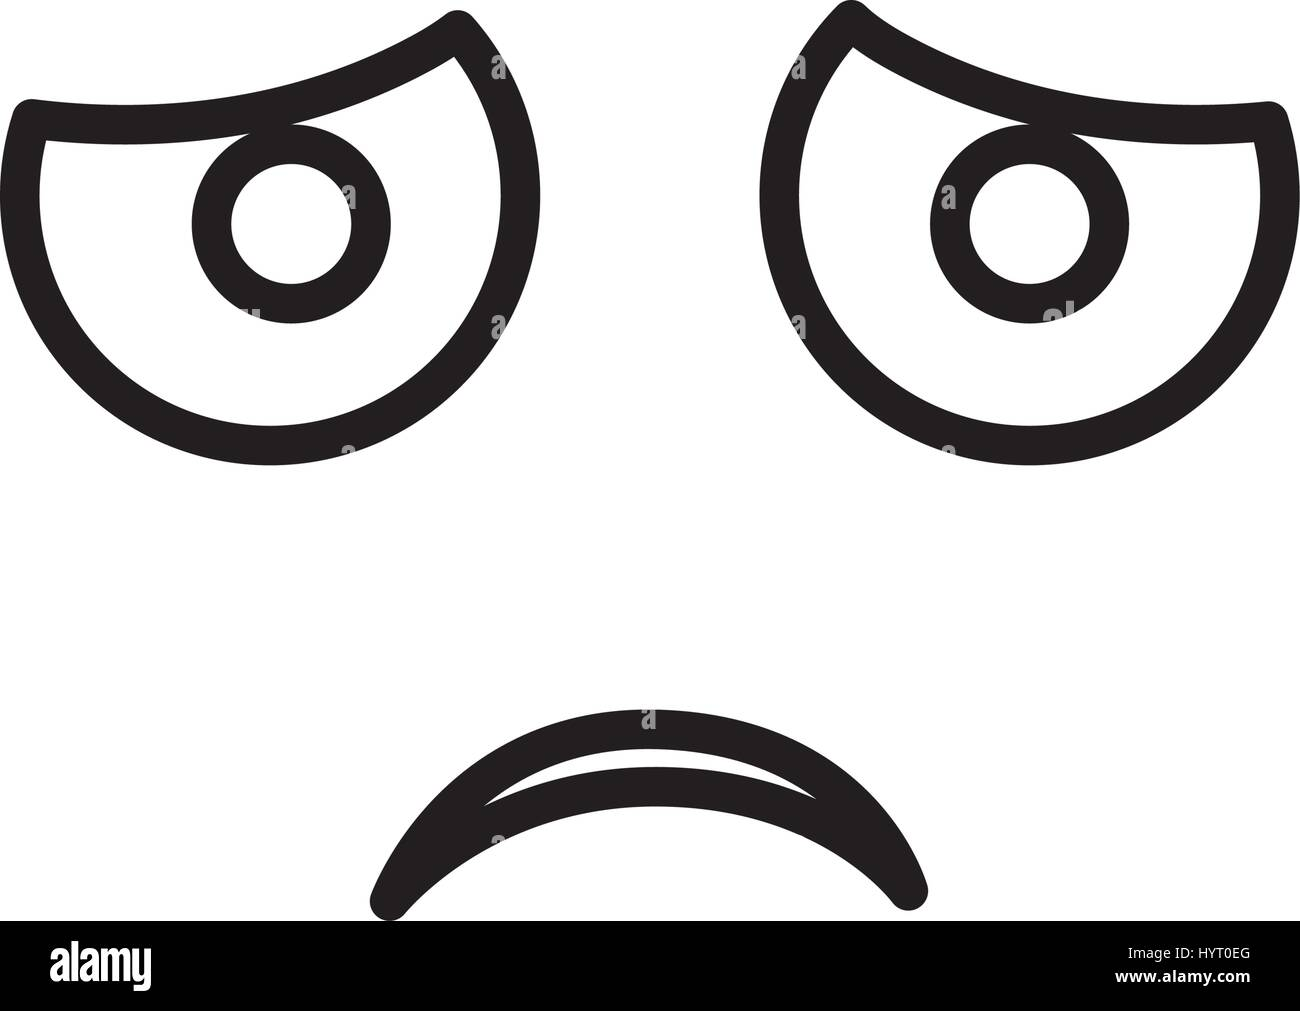 sketch silhouette emoticon dissapointed expression - Stock Vector